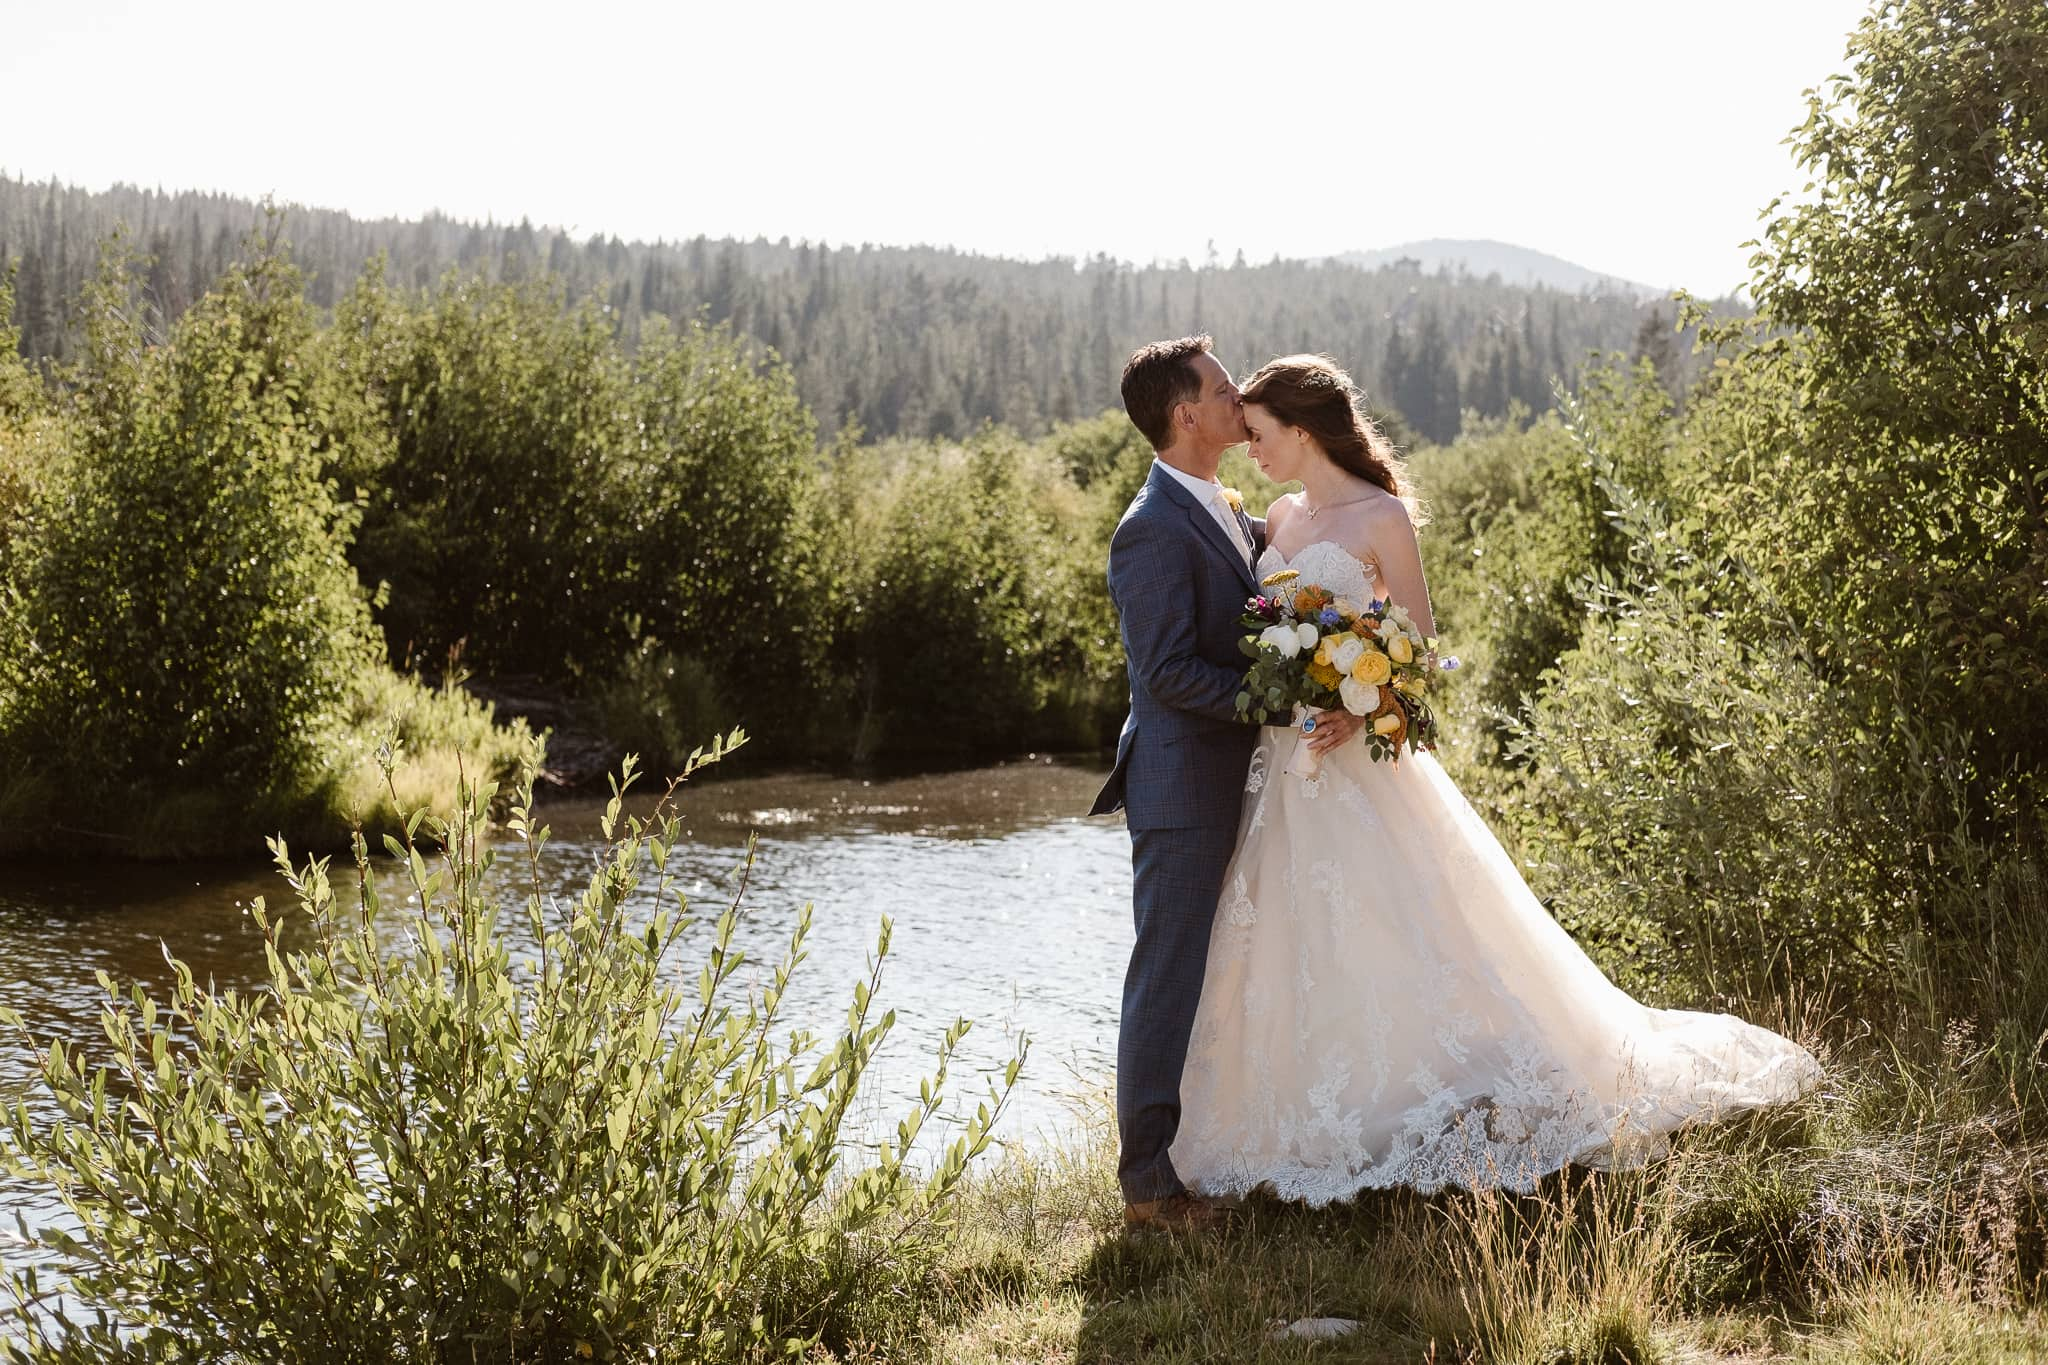 Red Feather Lakes elopement photographer, Colorado intimate cabin wedding, bride and groom portraits by mountain creek